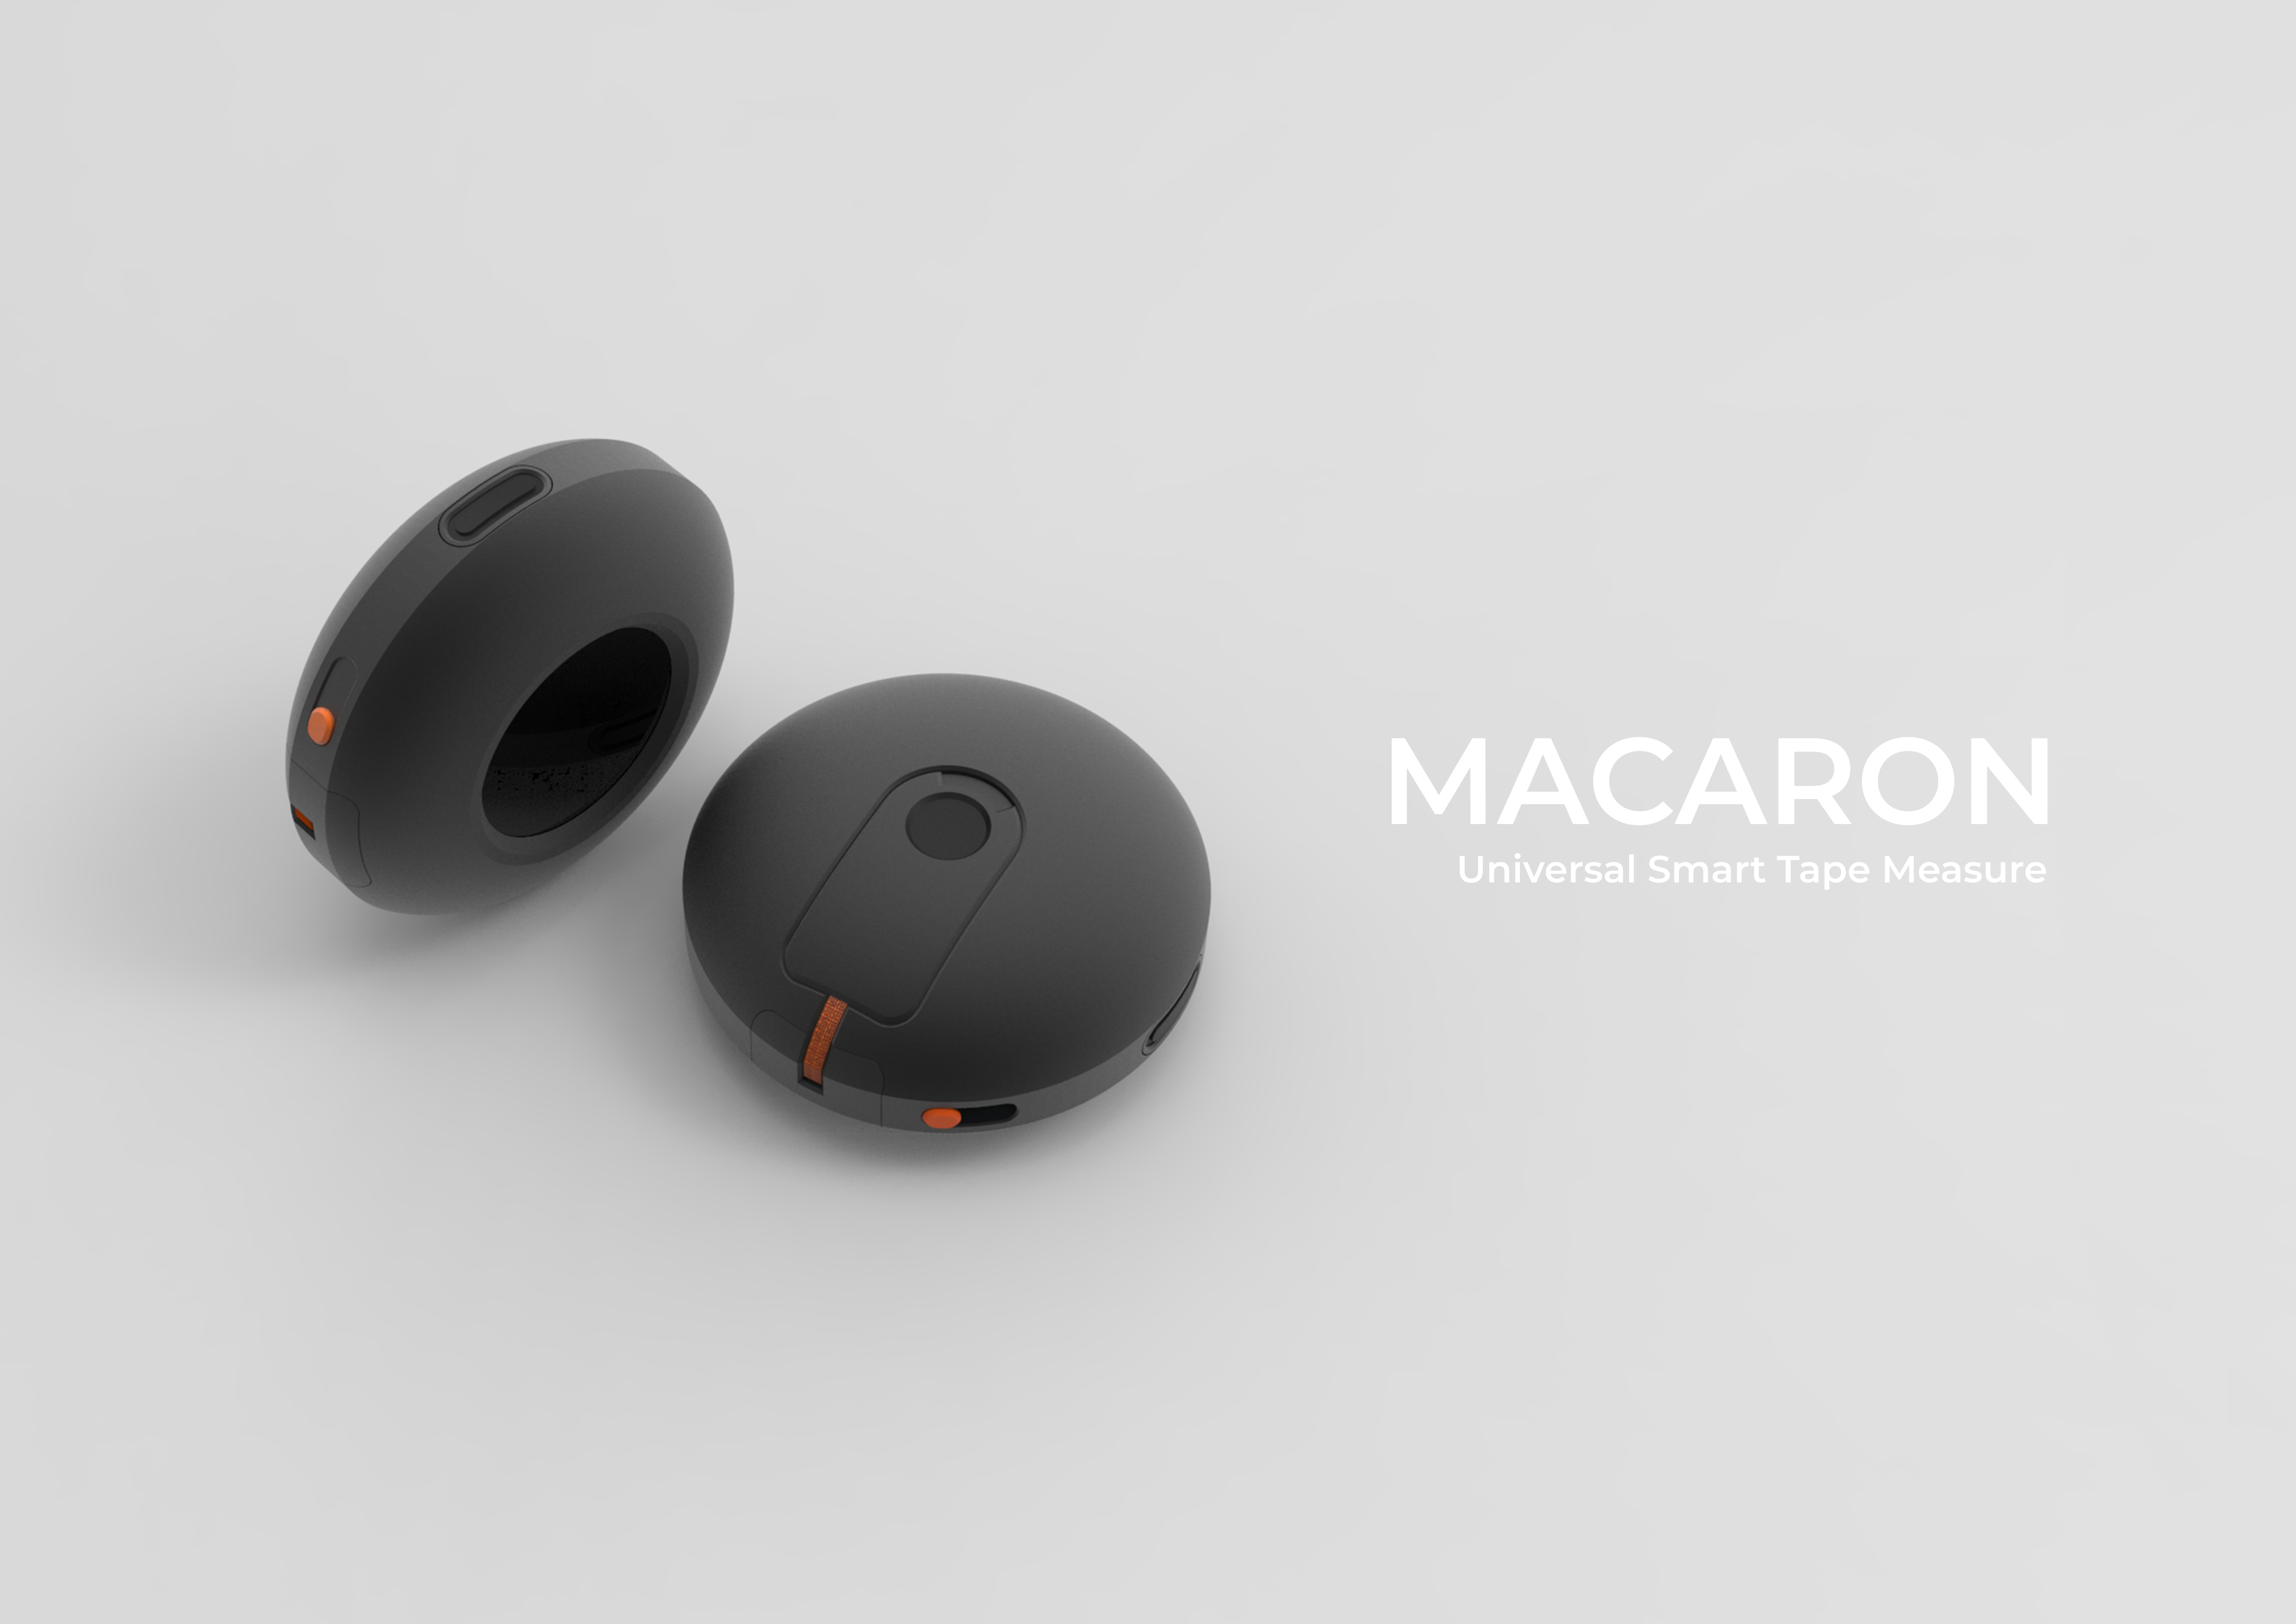 macaron universal access smart tape measure james dyson award